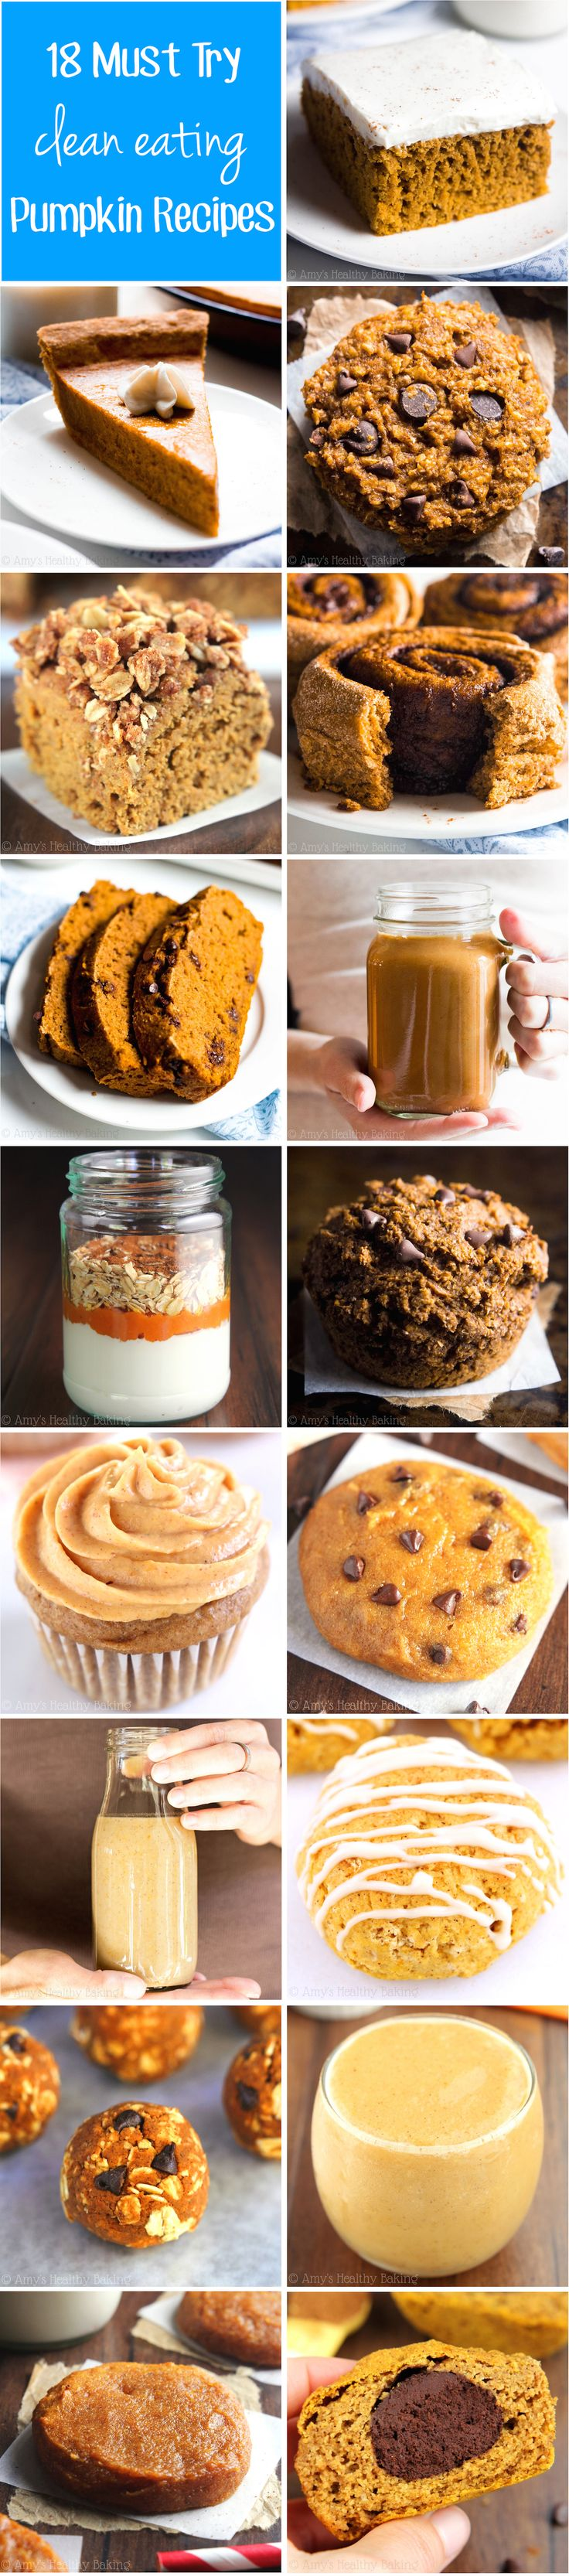 18 Must Try Clean Eating Pumpkin Recipes -- the BEST healthy fall breakfasts, desserts & snacks! All are made with NO refined flour or sugar!